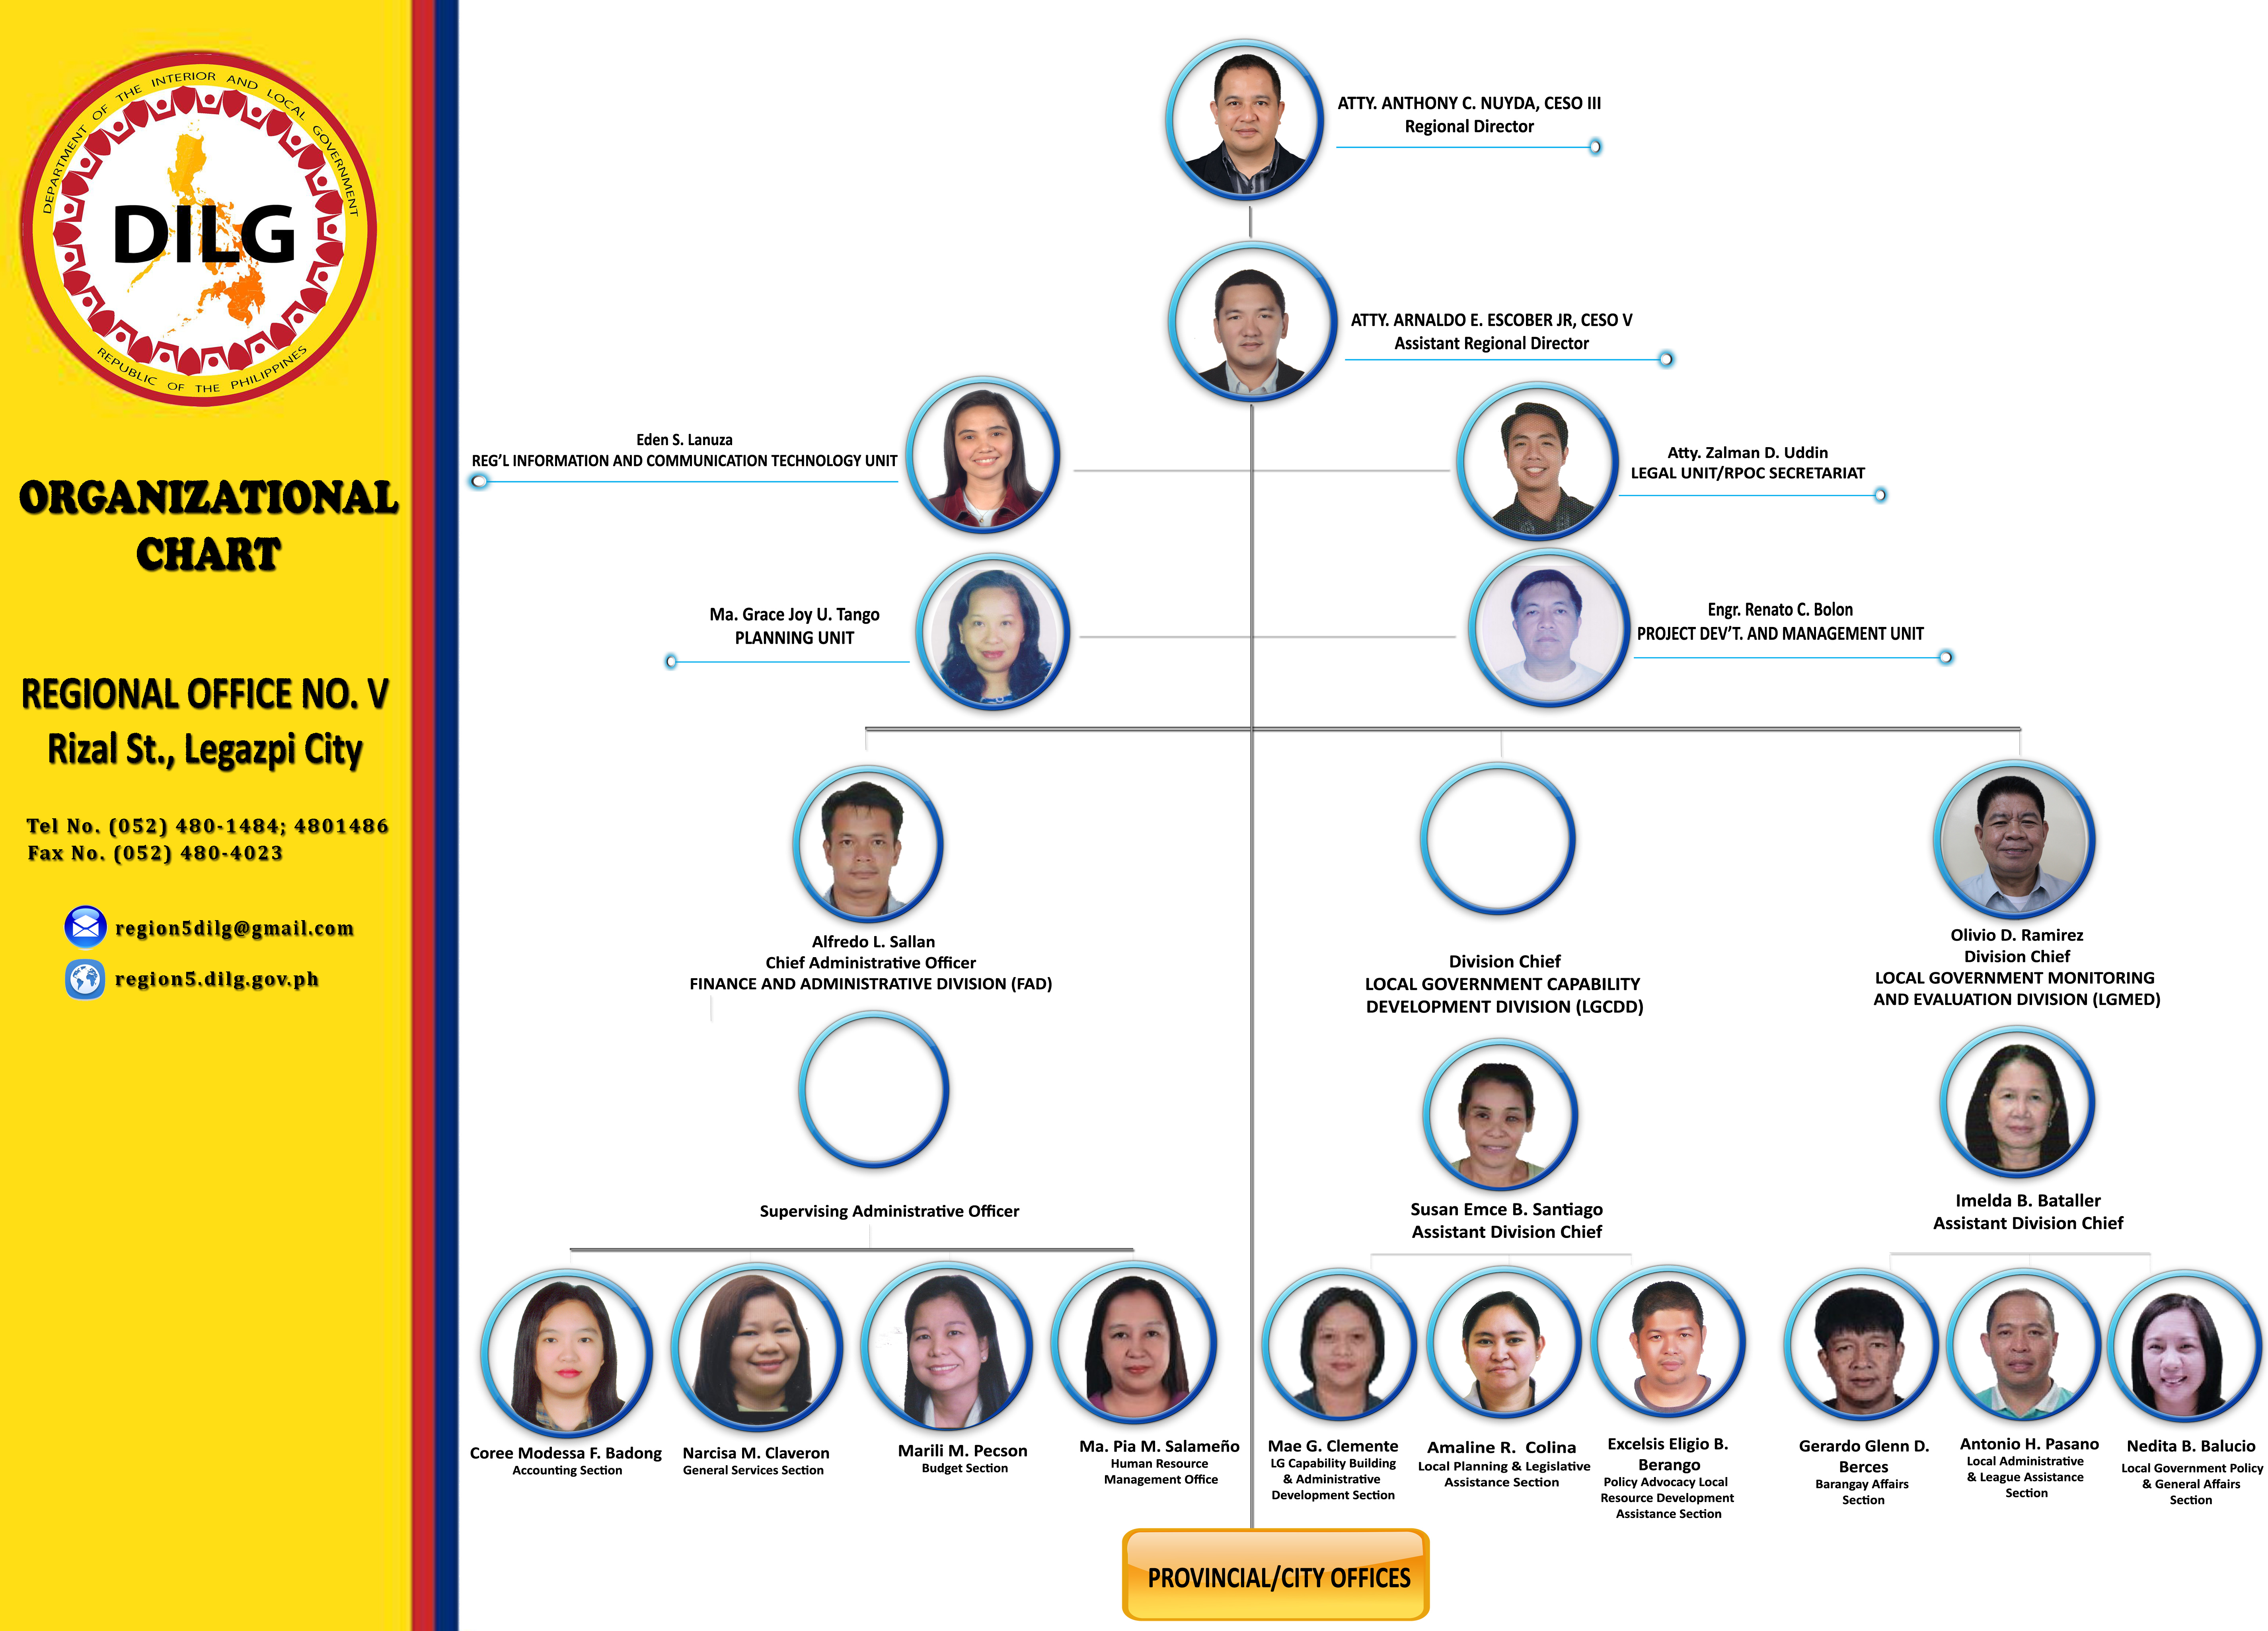 Organizational Sructure Dilg Regional Office No 5